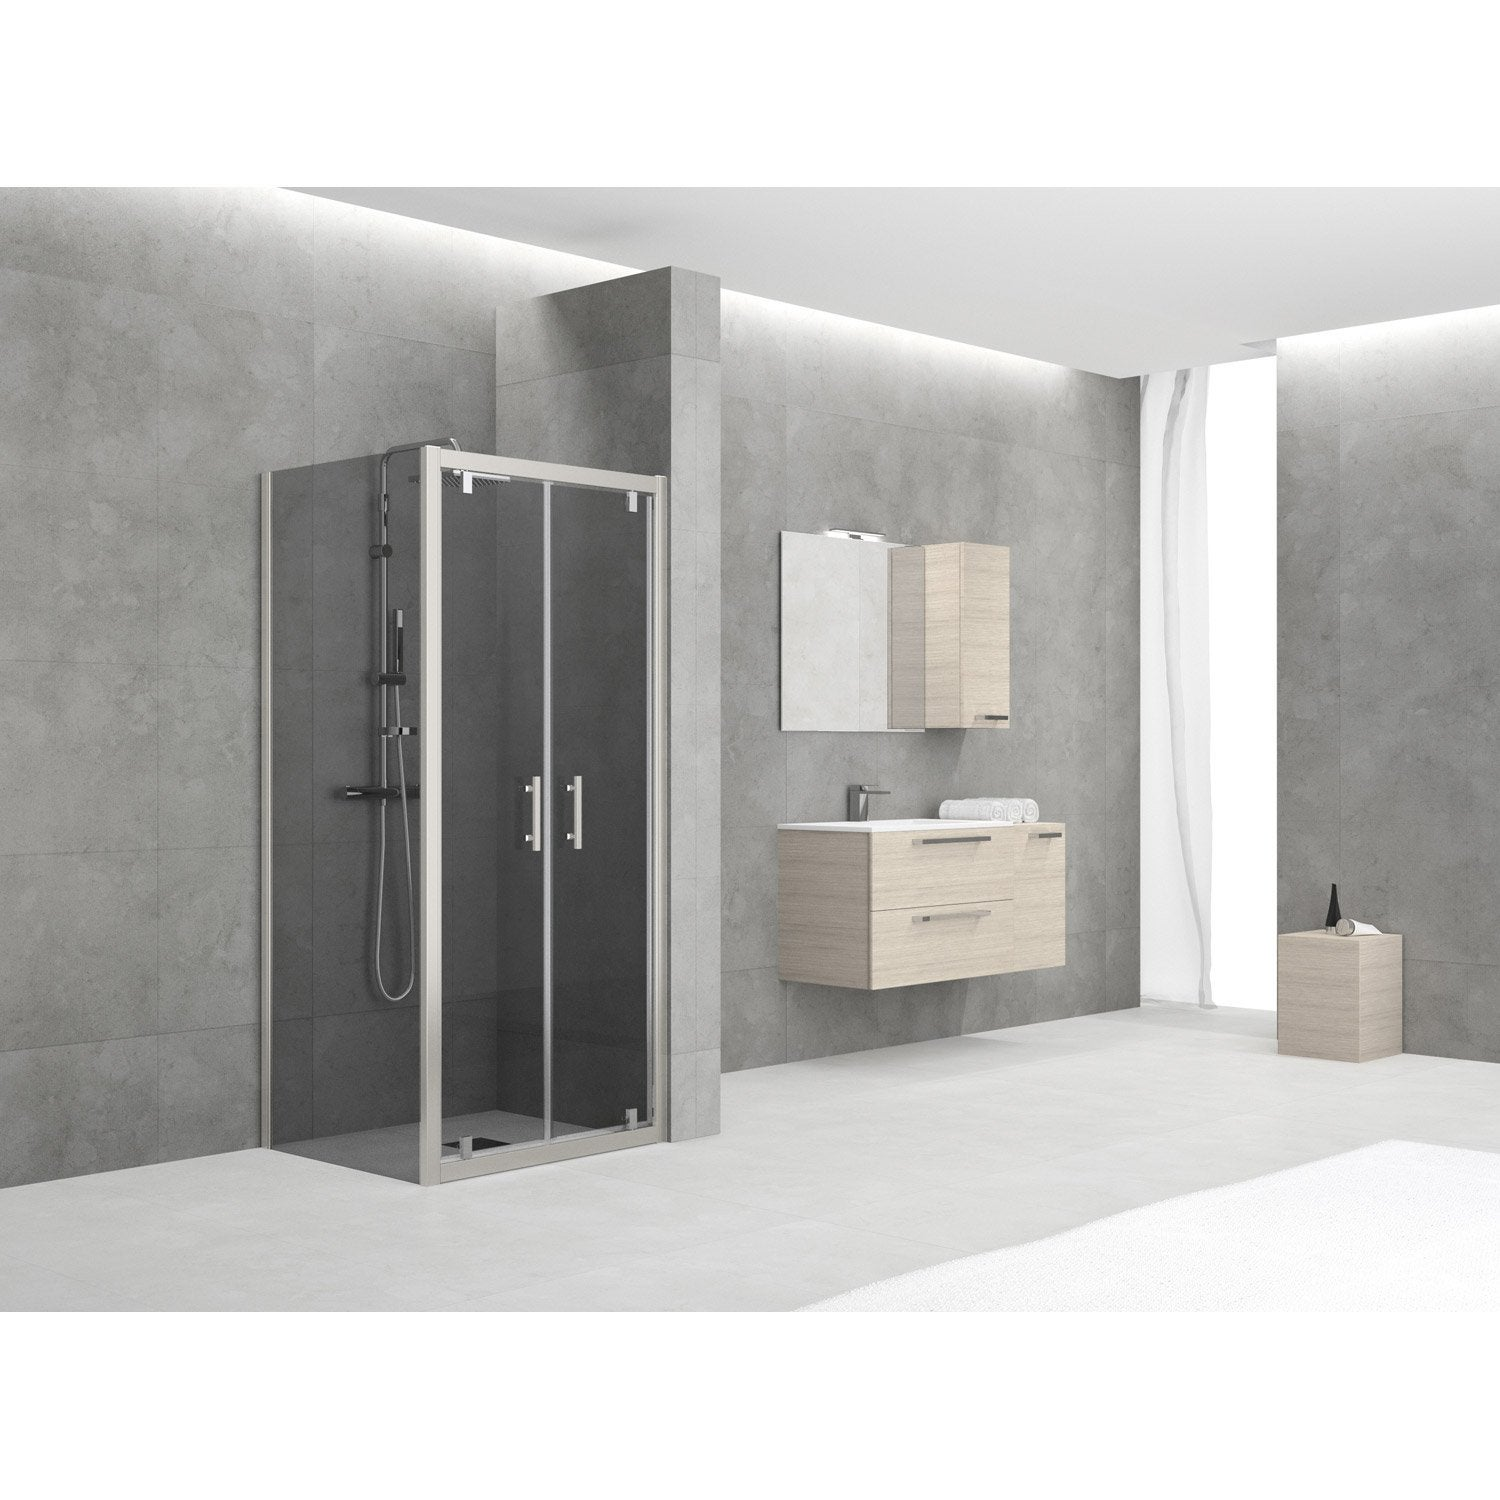 porte de douche battante sensea elyt verre de s curit fum leroy merlin. Black Bedroom Furniture Sets. Home Design Ideas